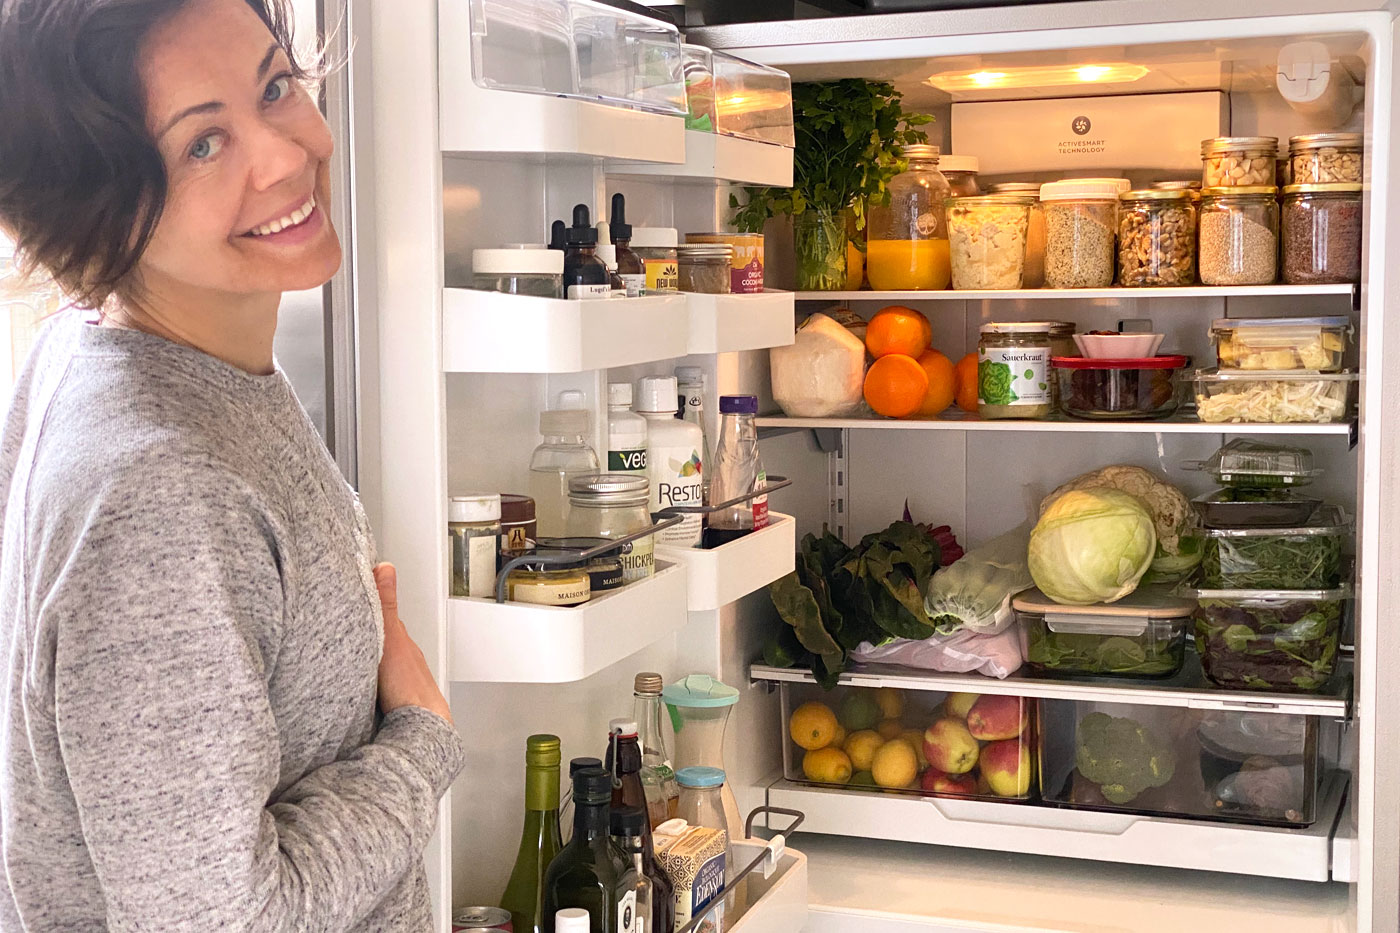 How to prepare your fridge for self-isolation